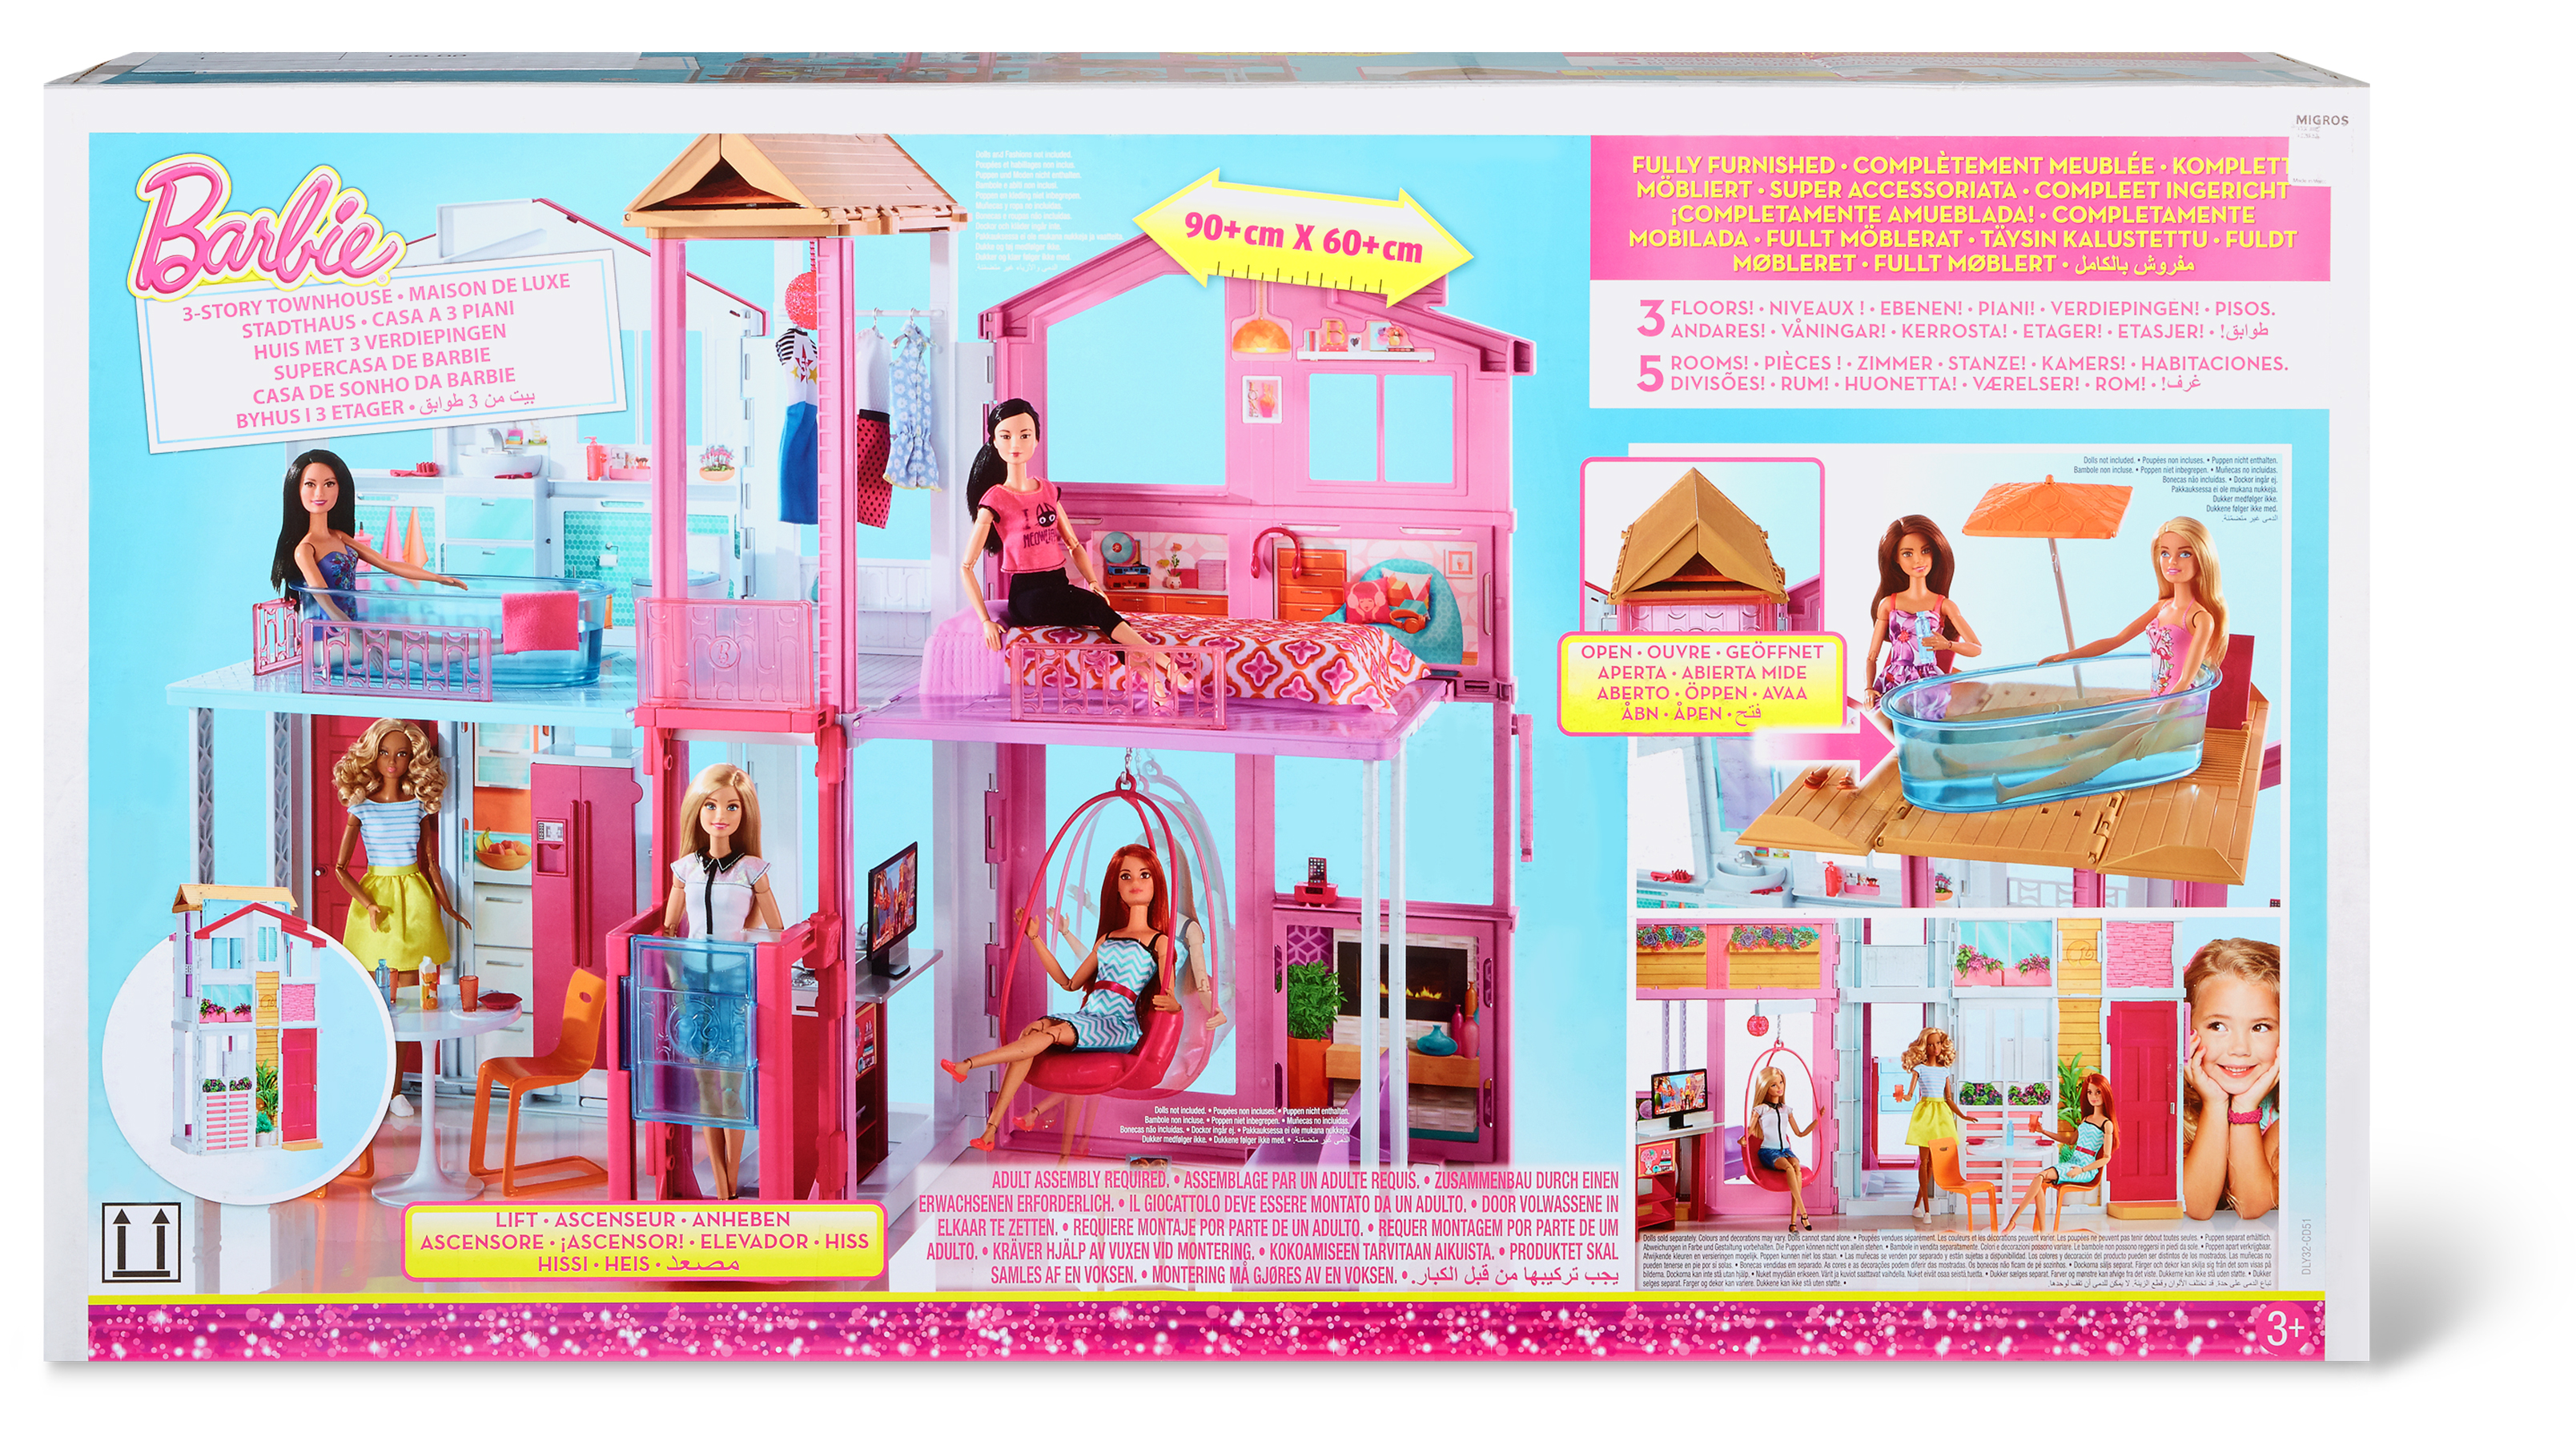 La casa di barbie a tre piani famigros for Accessori per la casa di barbie